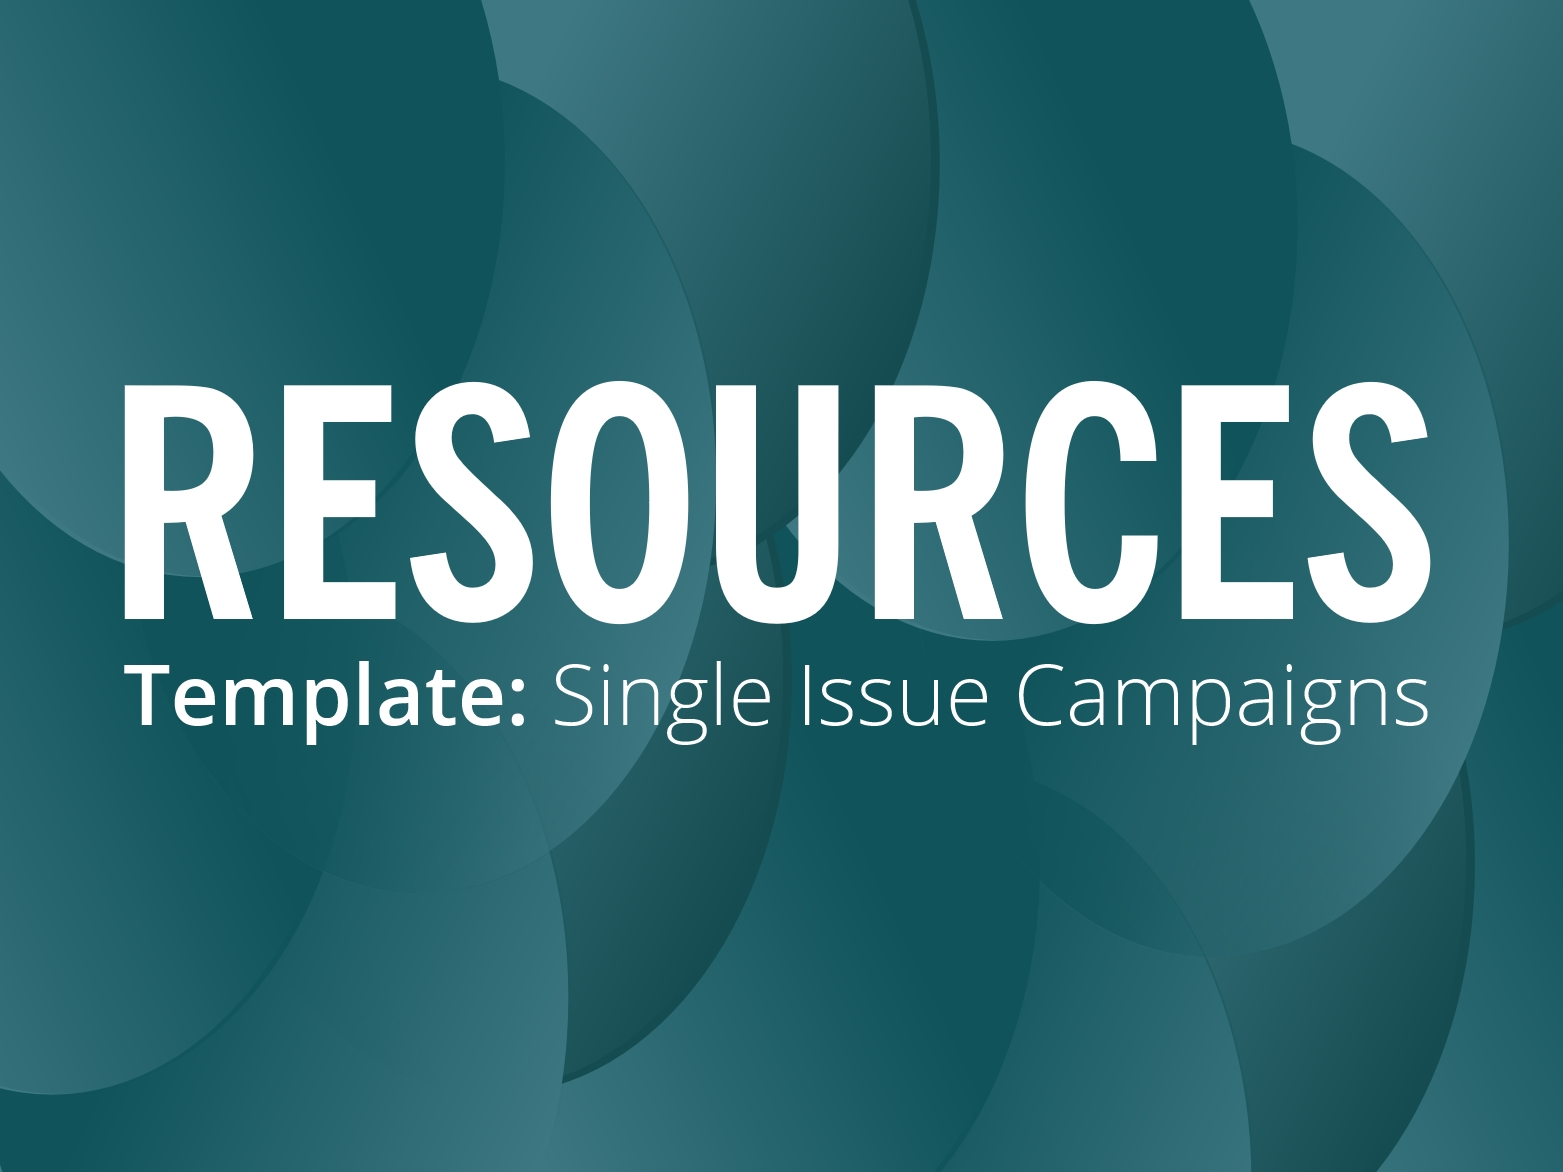 RESOURCES: Single issue campaign leaflet